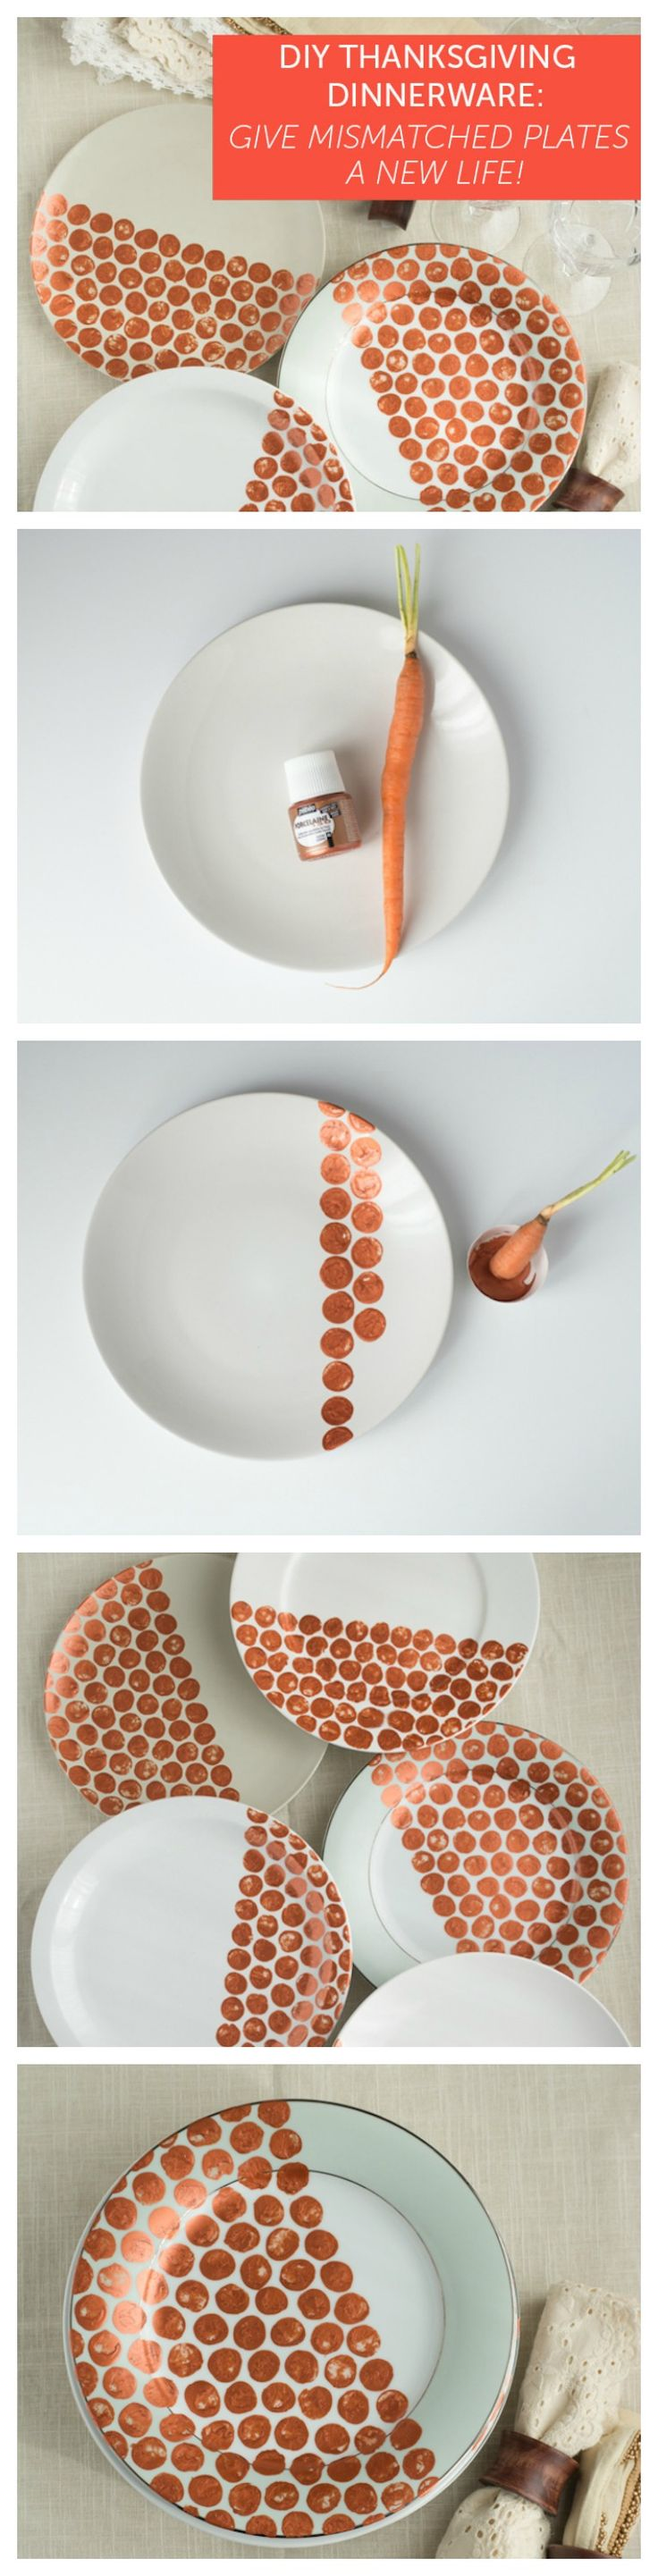 Hosting Thanksgiving this year? You might not have enough plates... so DIY inexpensive plates for a fun festive look!